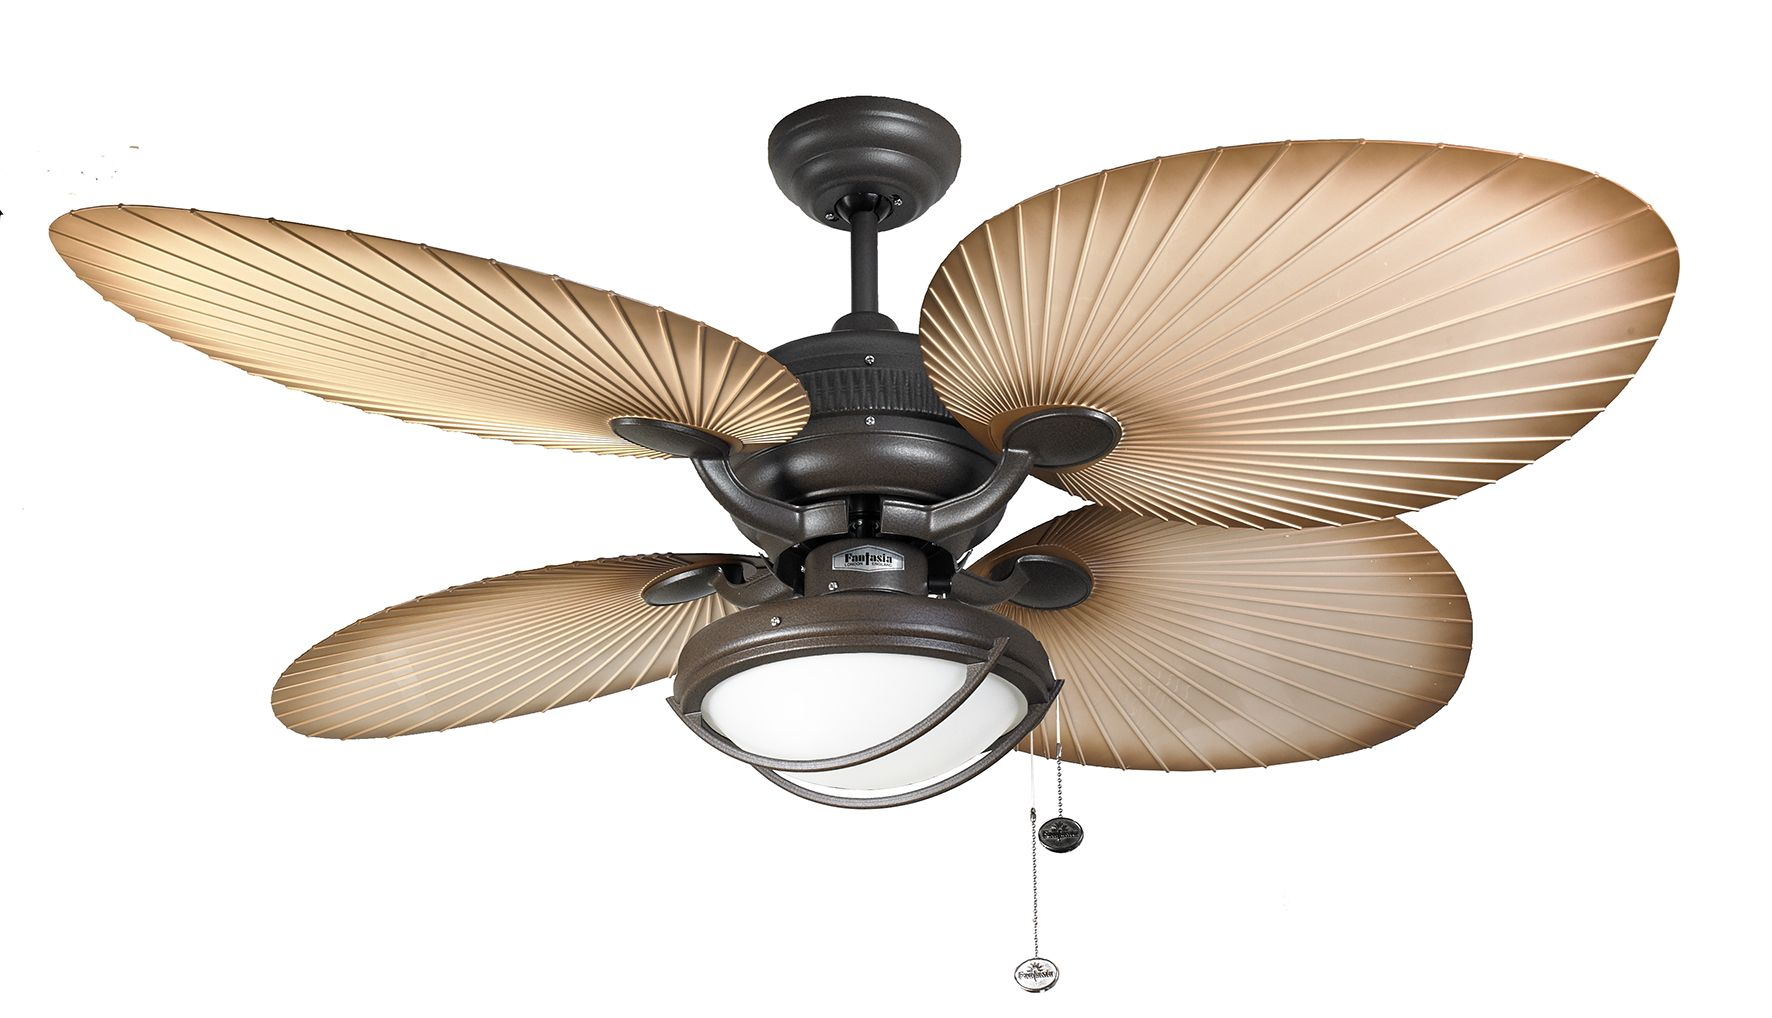 Outdoor ceiling fans fantasia palm 52 chocolate brown acrylic blade ceiling fan light 114871 aloadofball Choice Image